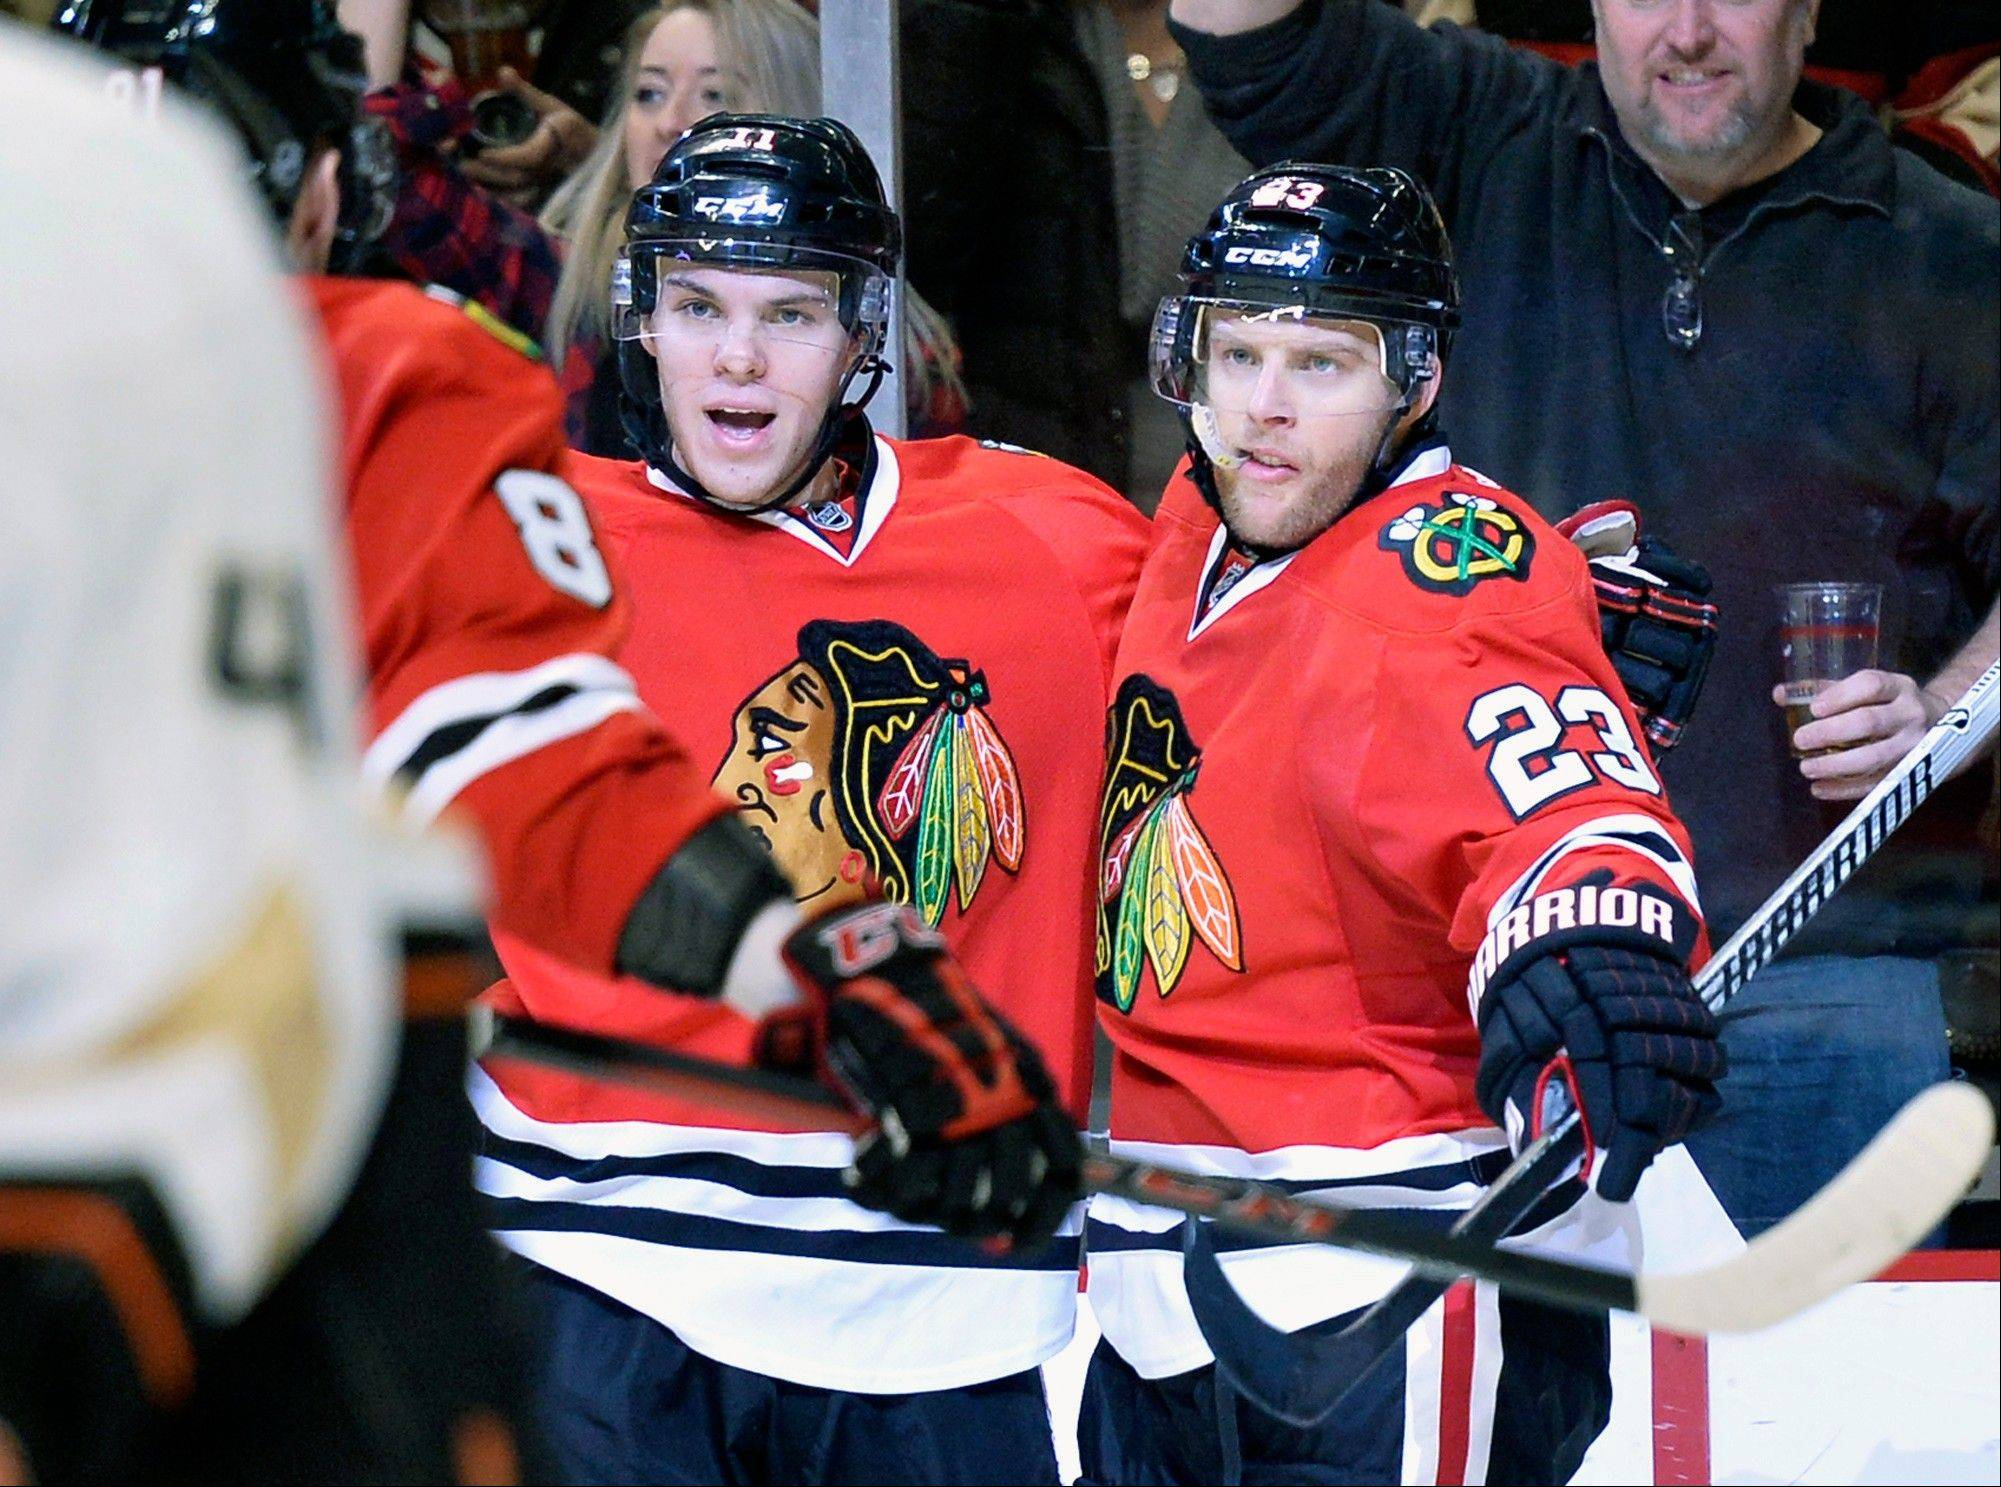 The Hawks' Jeremy Morin and Kris Versteeg celebrate Versteeg's goal during the second period against the Ducks on Friday night at the United Center.